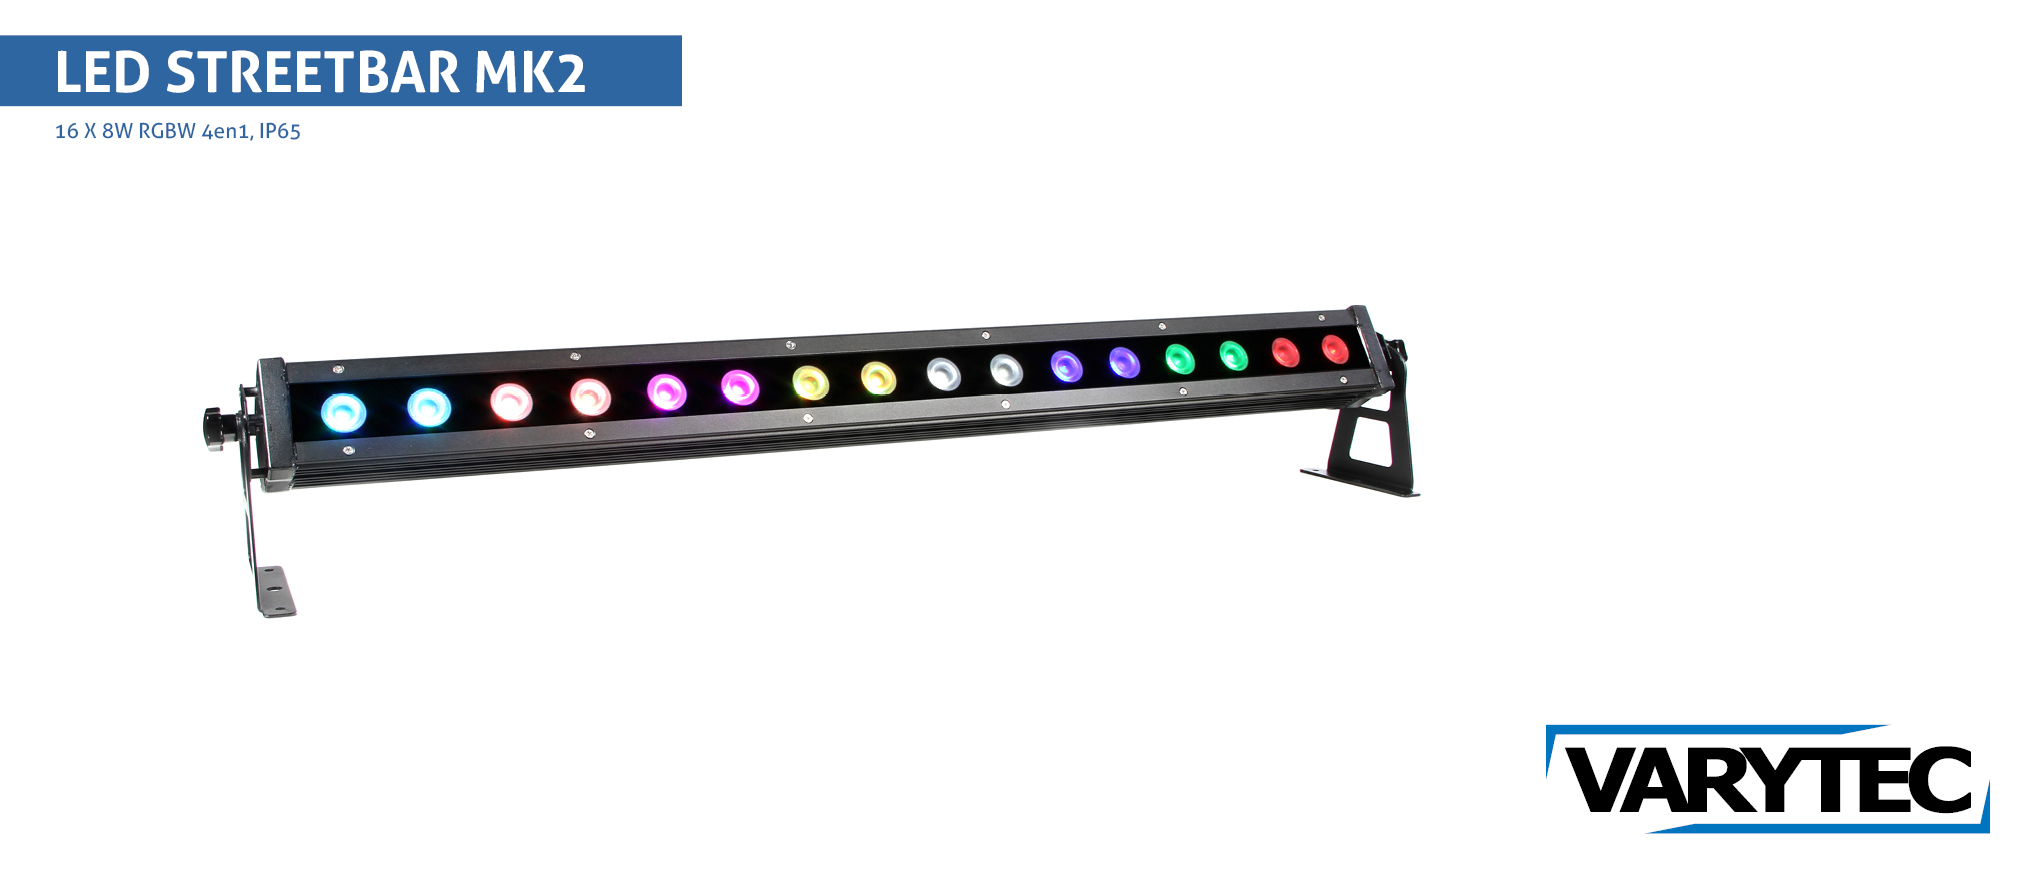 LED STREET Bar MK II  16 x 8W  RGBW  4in1  IP65  30°